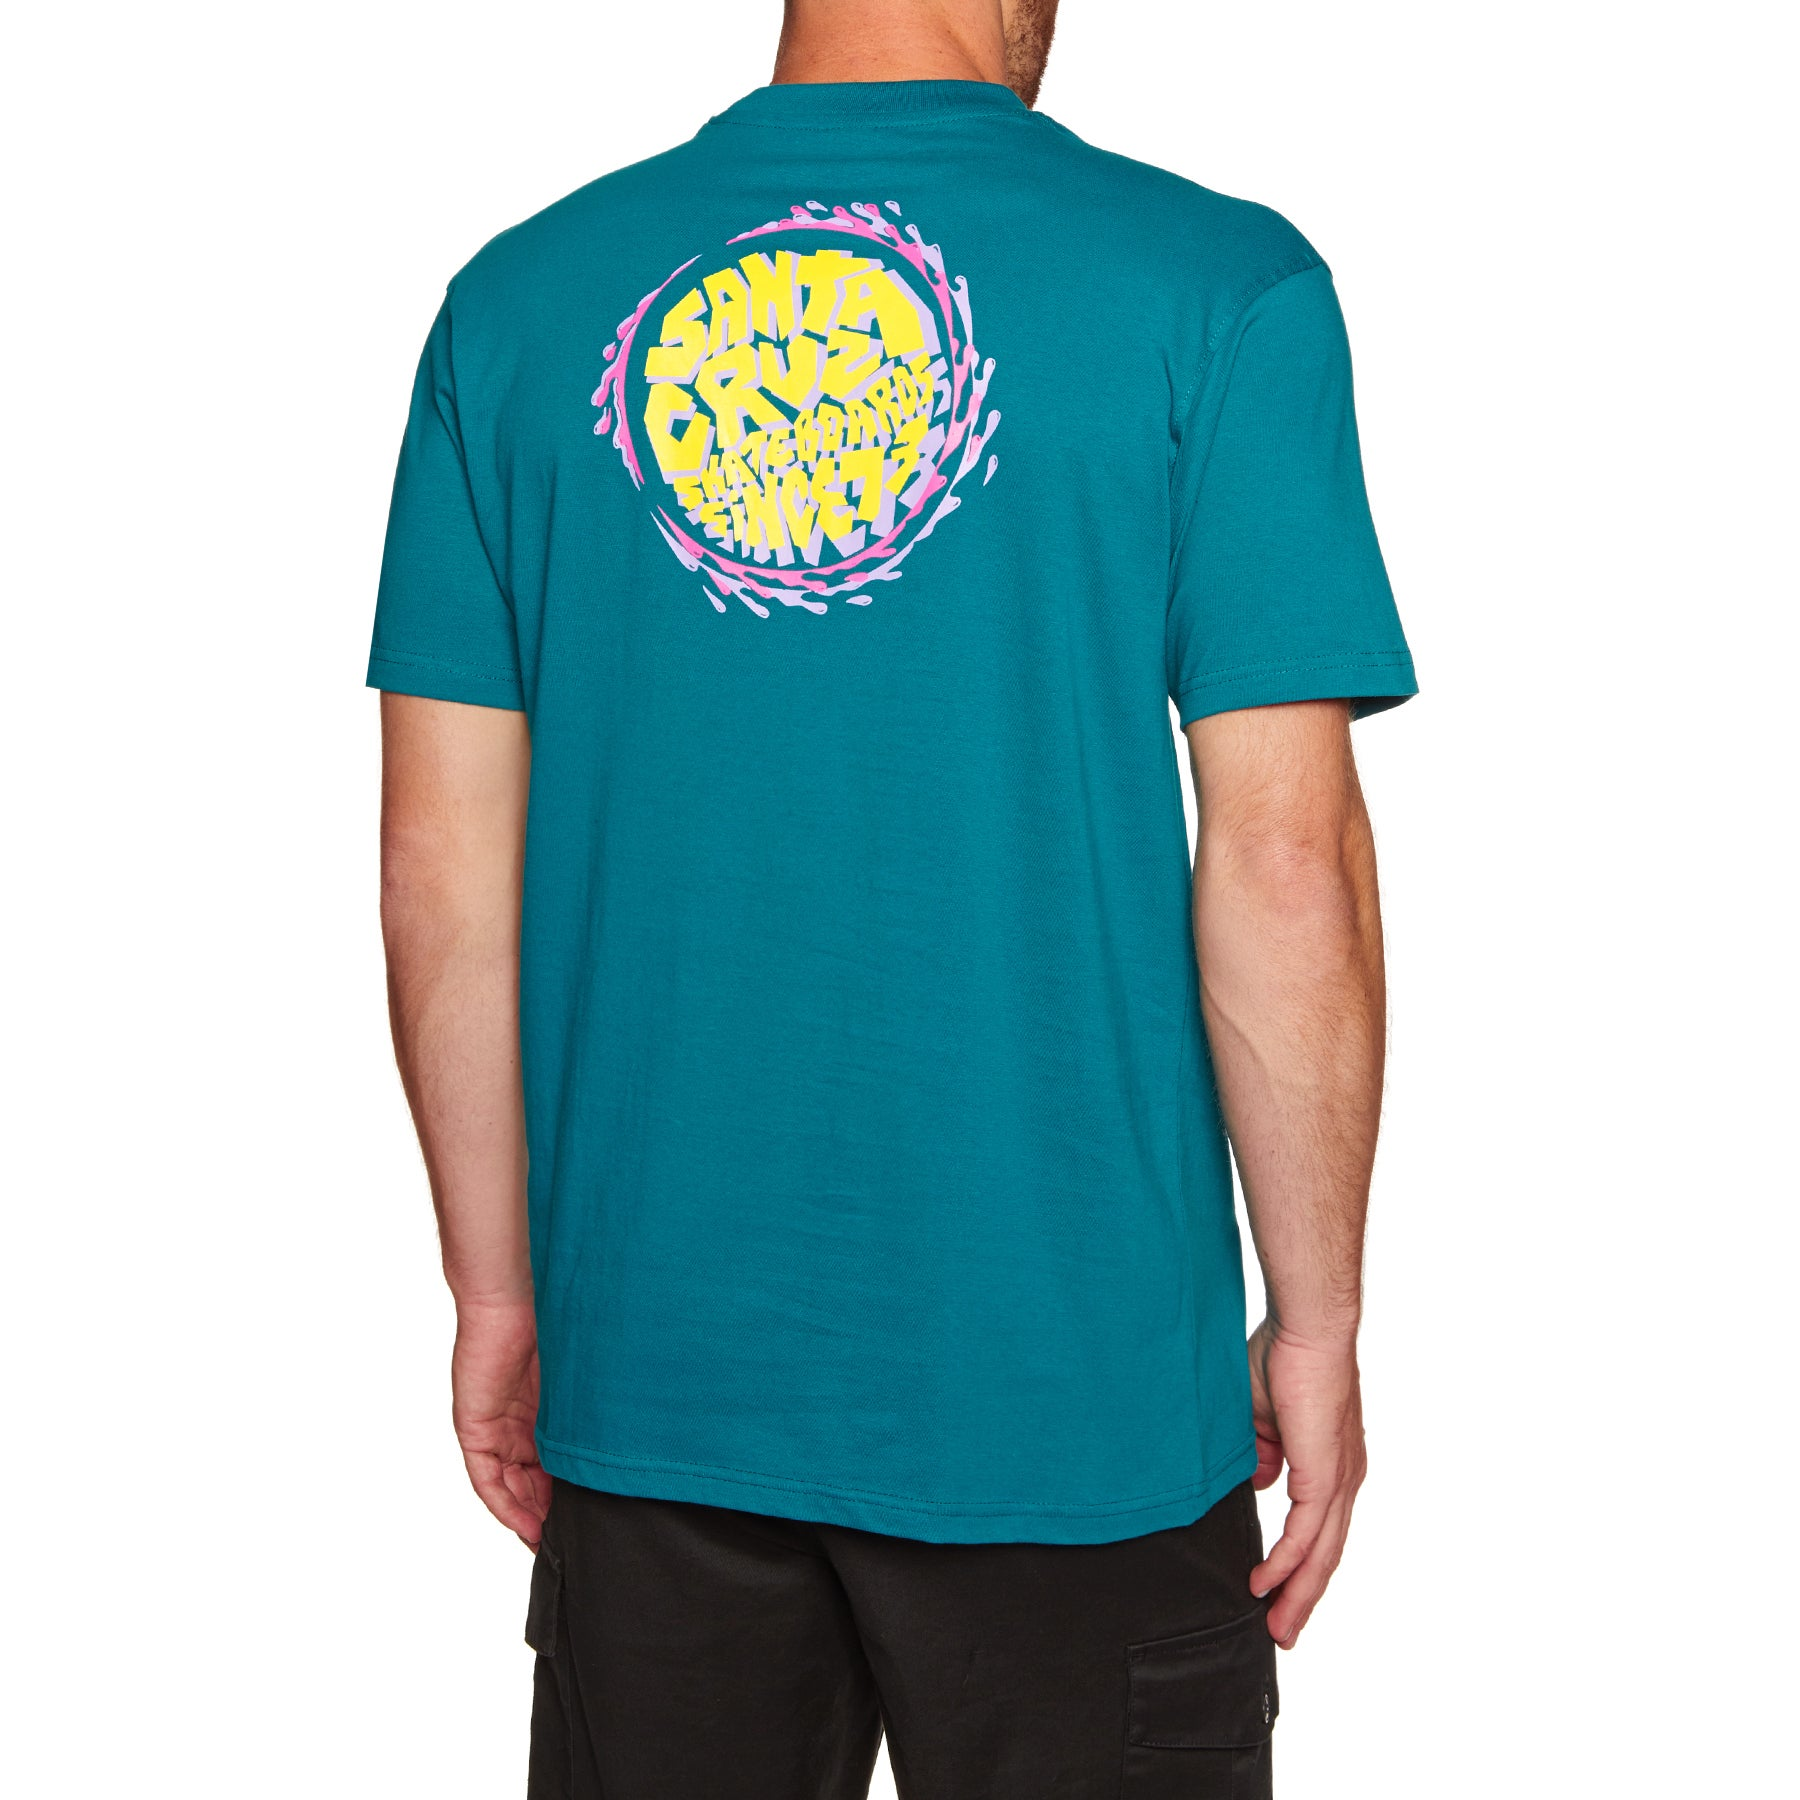 Santa Cruz Spin Pocket Short Sleeve T-Shirt